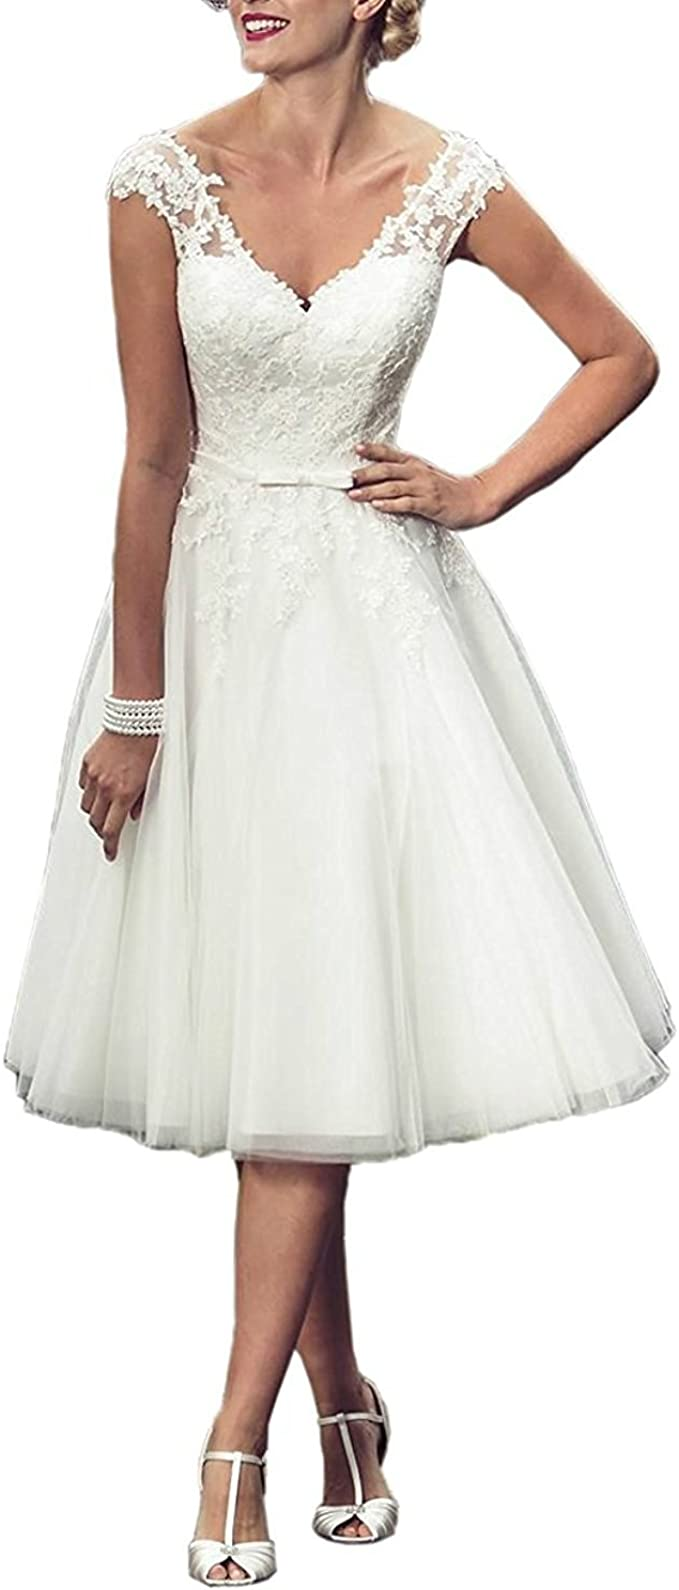 Lorderqueen Princess Lace Appliques Wedding Dress Short Bridal Gowns At Amazon Women S Clothing Store,Best Online Wedding Dress Sites Uk